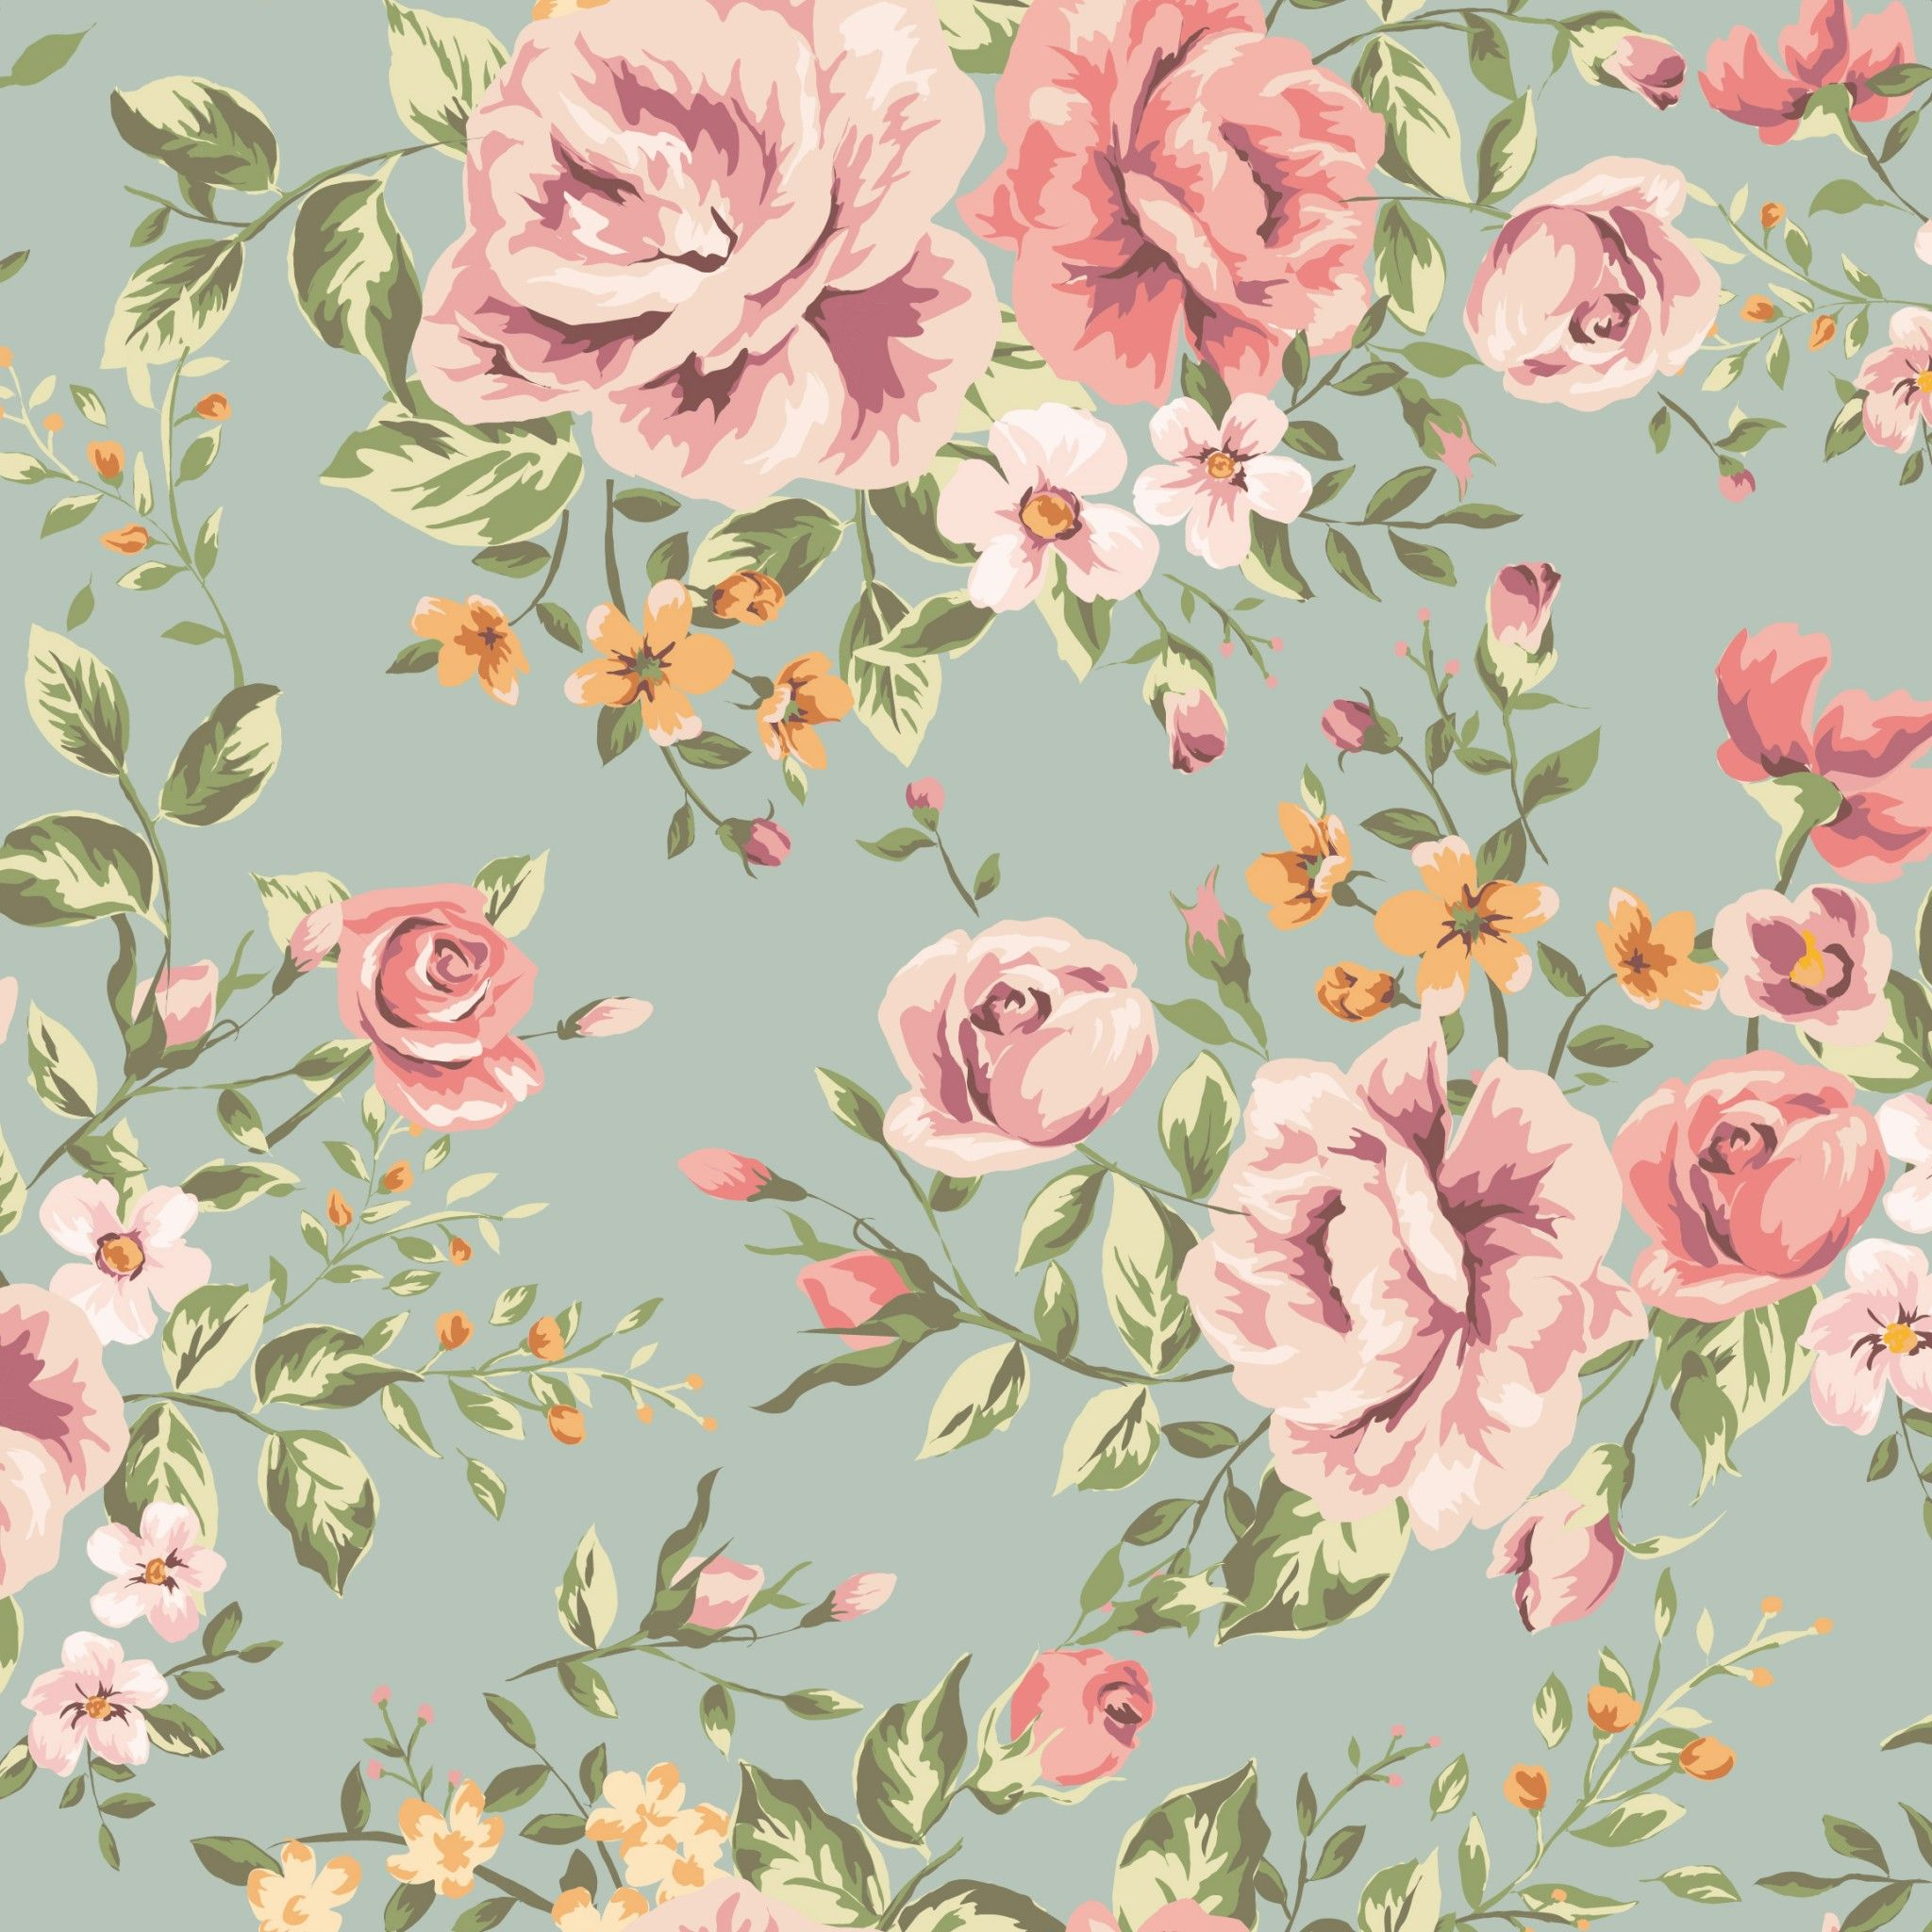 Classic Seamless Vintage Flower Pattern Tap to see more